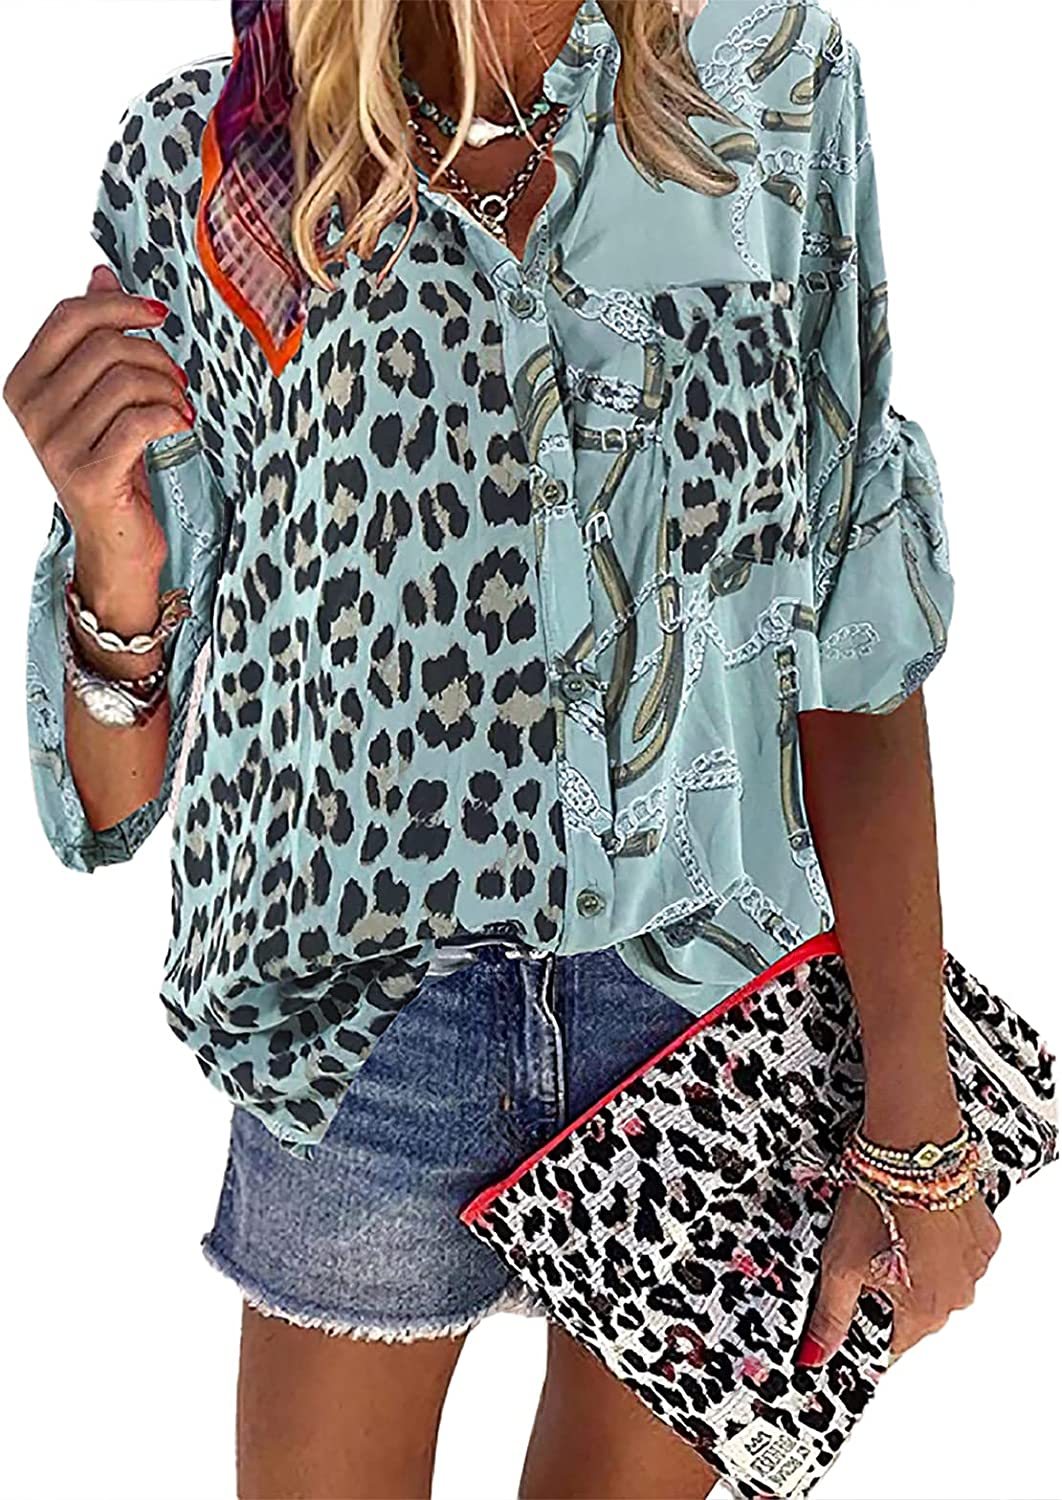 Akivide Women's Casual Leopard Button Down Blouse Shirt Long Sleeve Tunic Tops